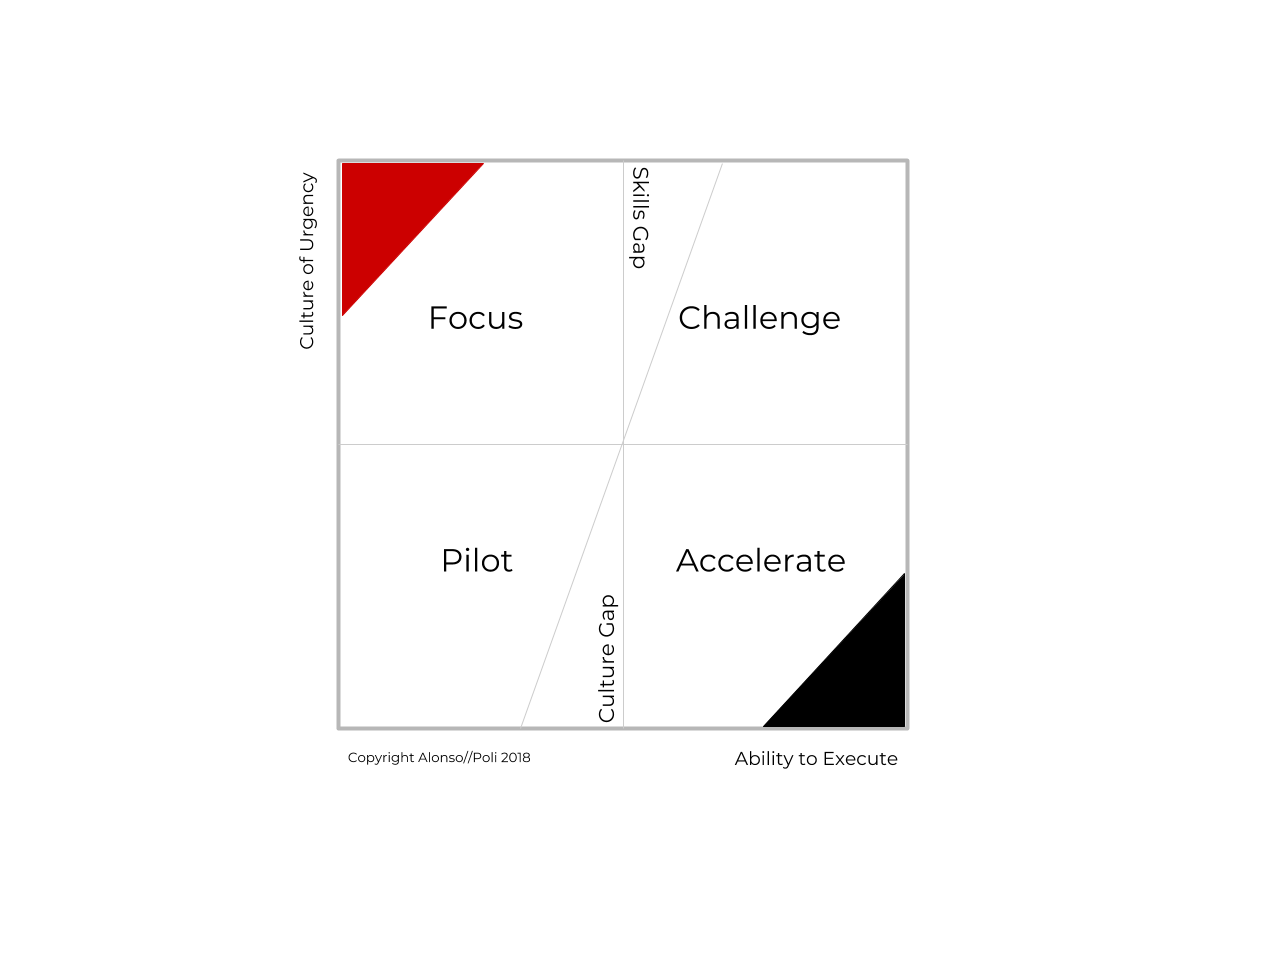 Failure as a Service Assessment Matrix